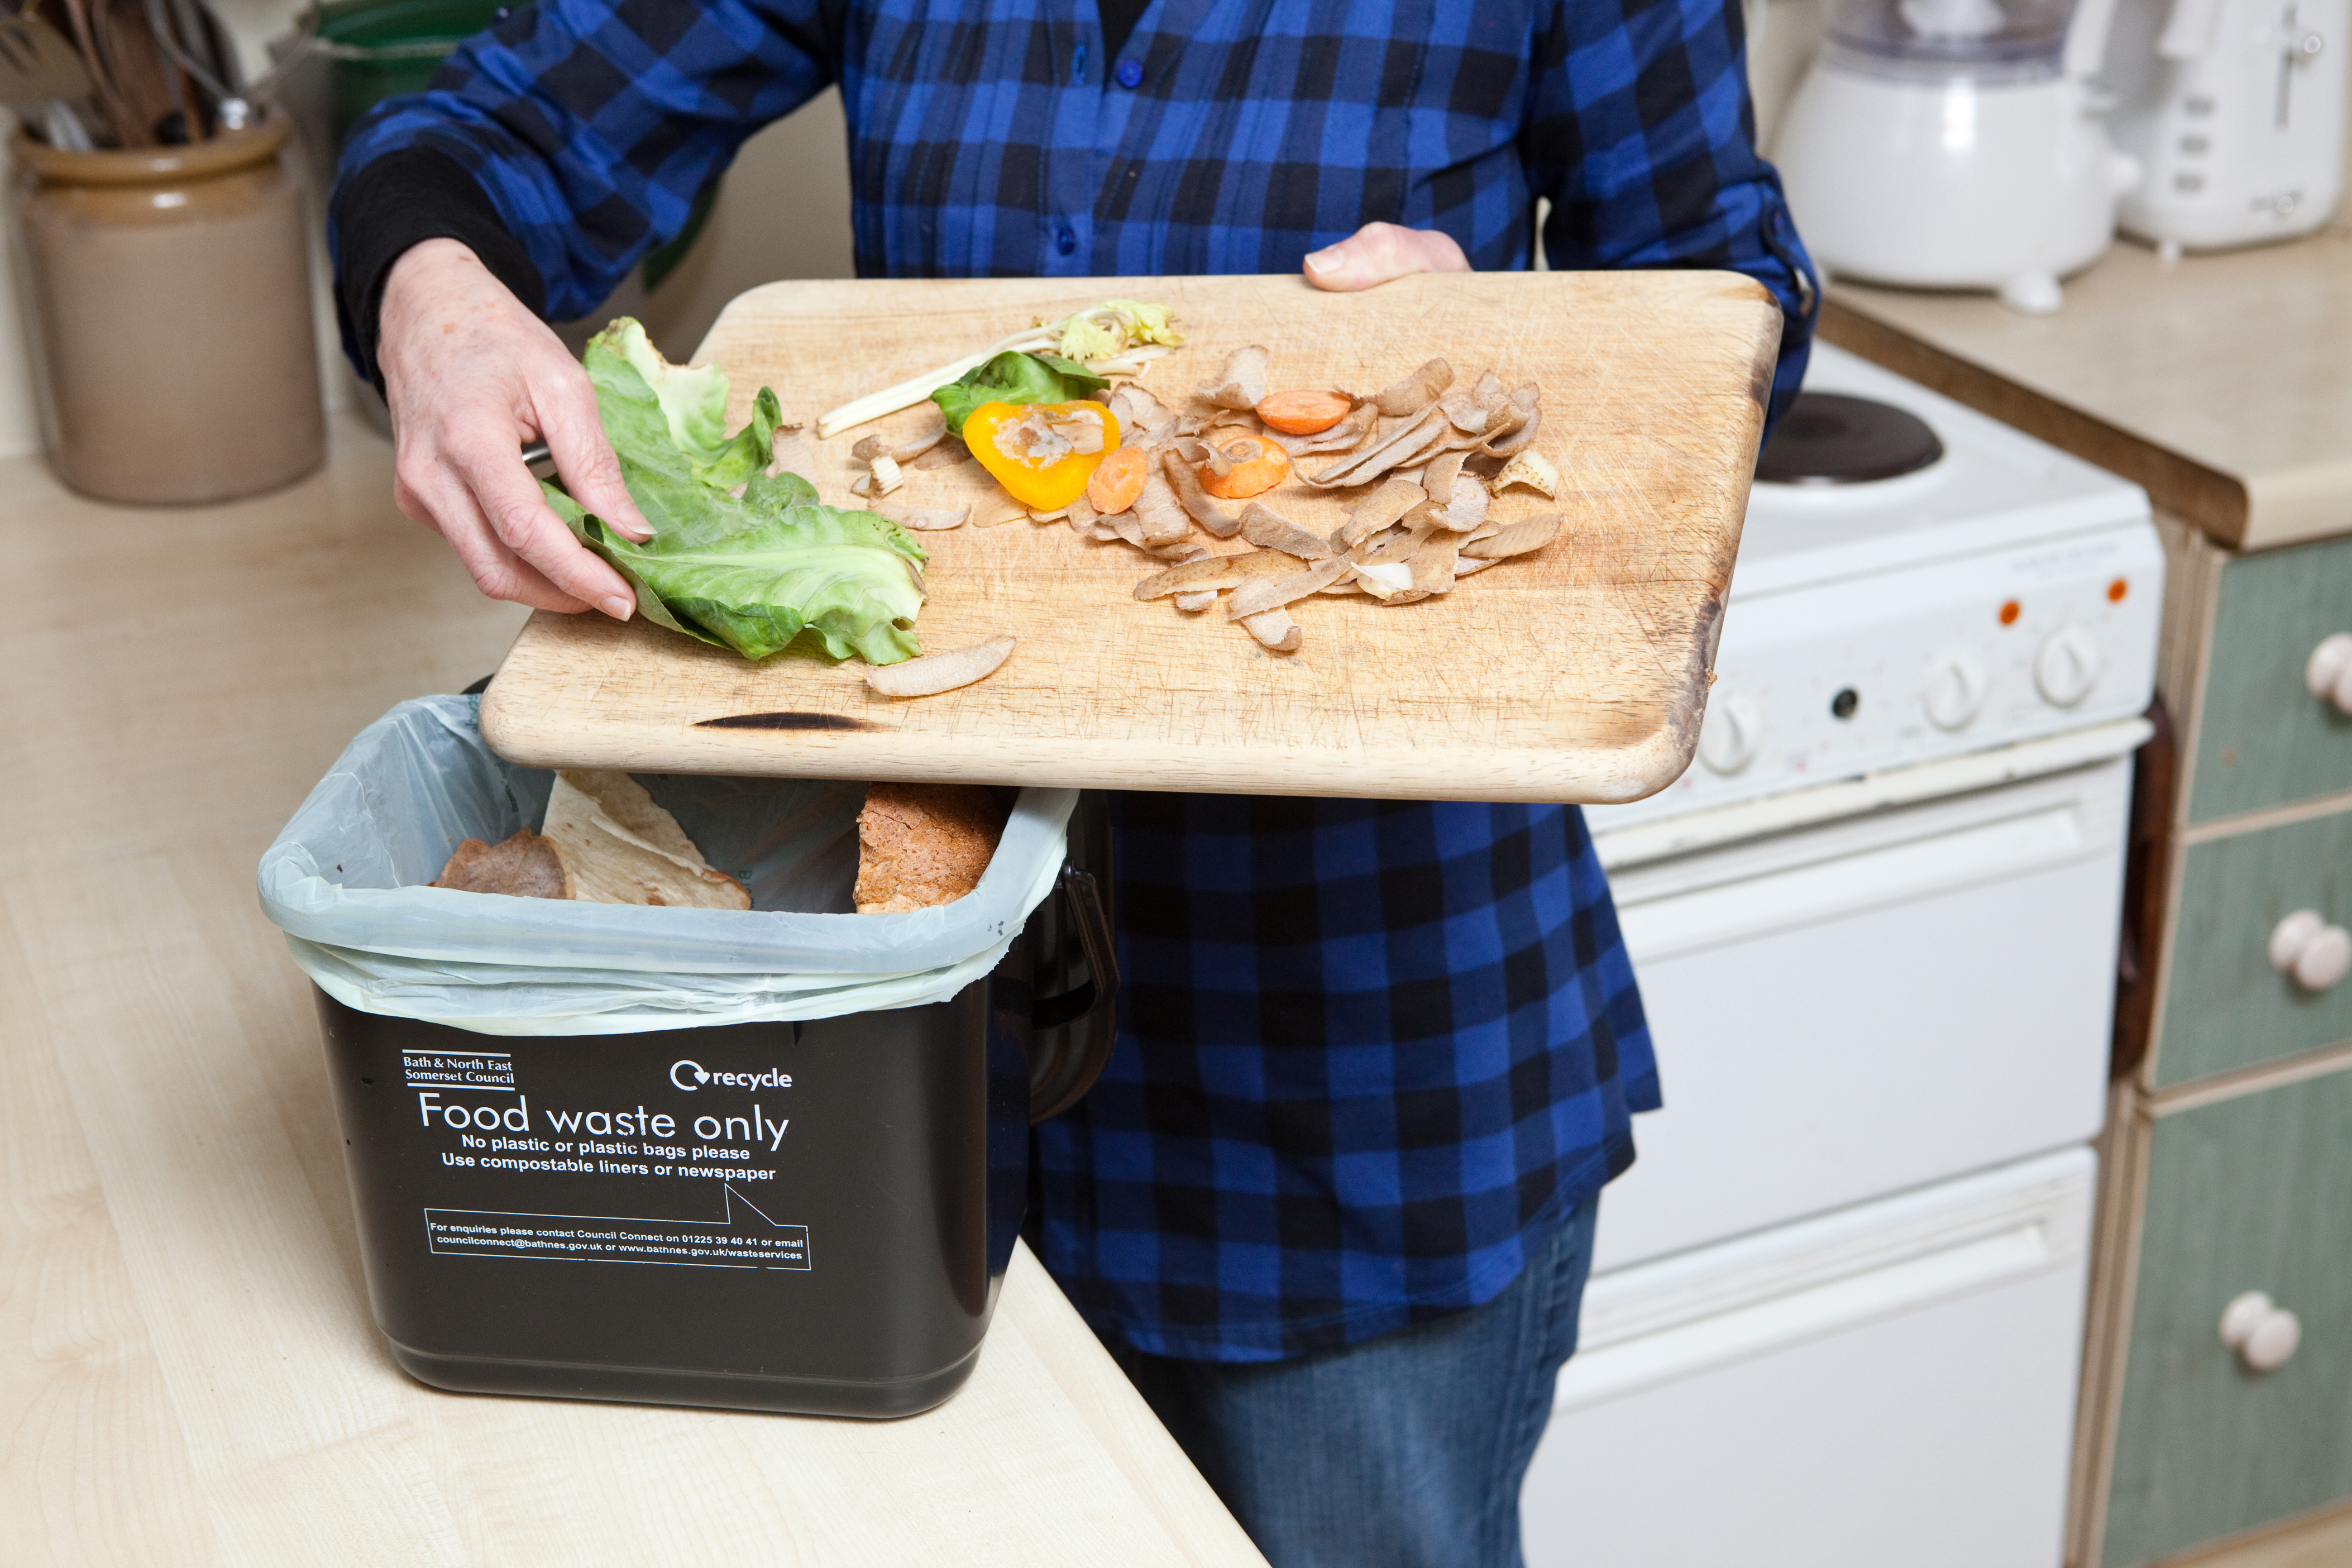 food waste caddy image